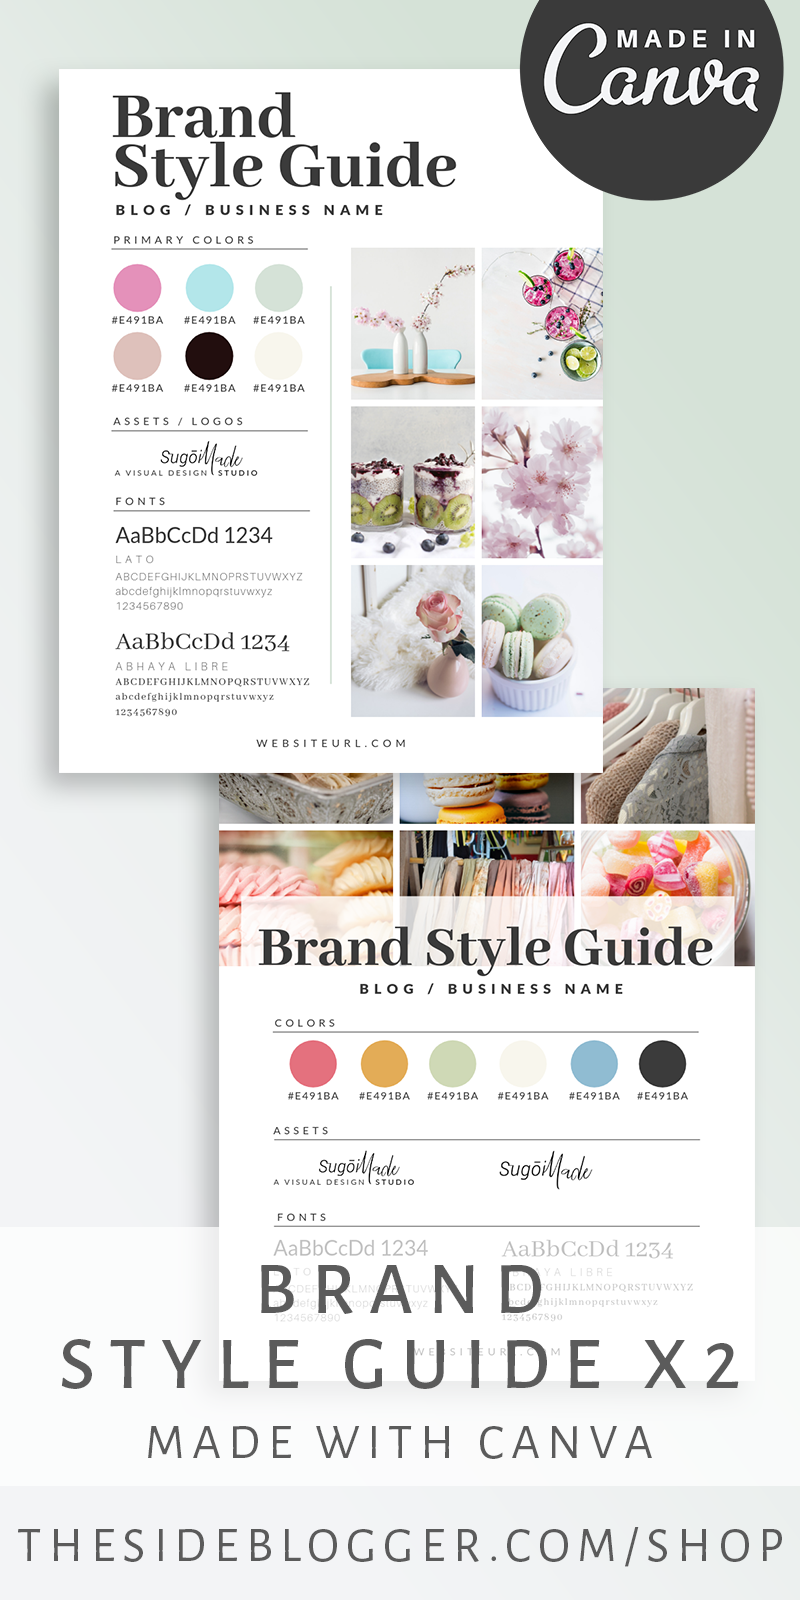 2 templates for curating a brand board / brand style guide. Everything you need for your visual branding in one place. Made with Canva for easy customization. Choose from one of the two styles to match your unique aesthetics. - The Side Blogger